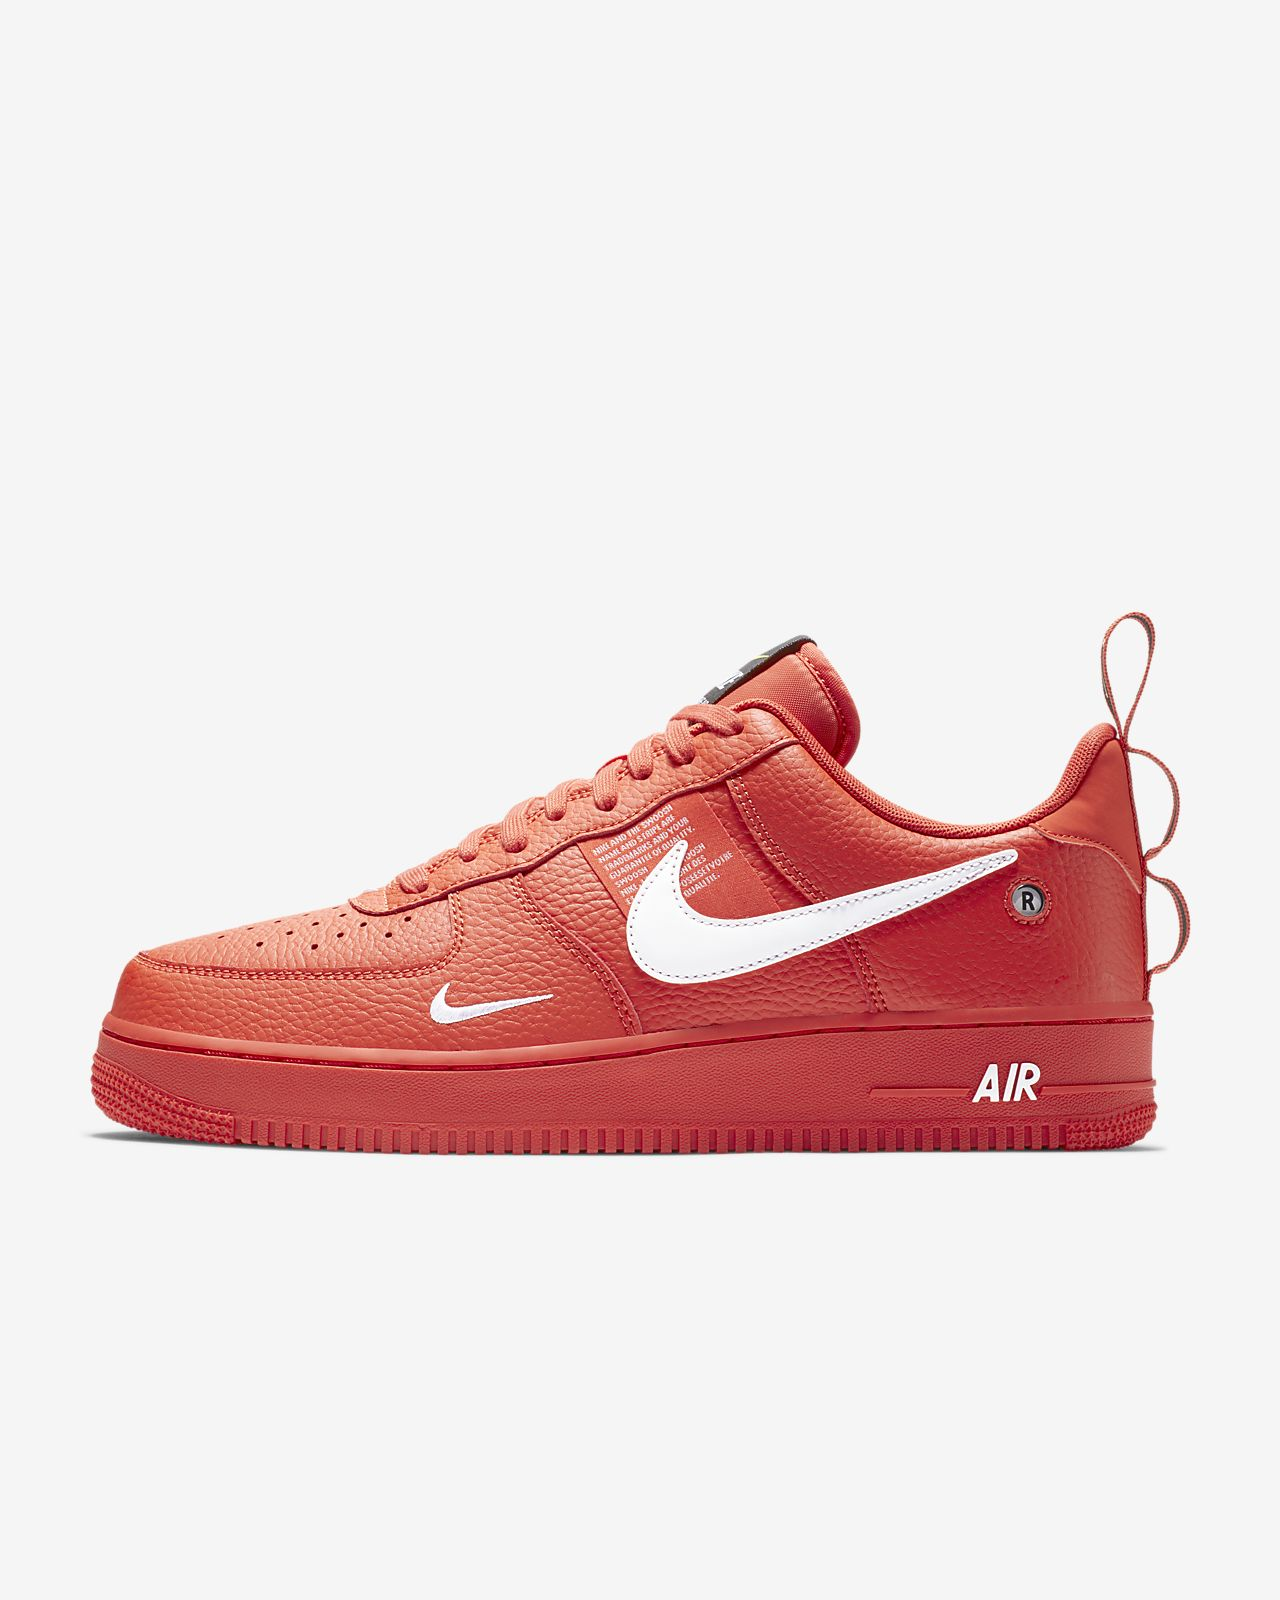 501f632cfd93 Nike Air Force 1  07 LV8 Utility Men s Shoe. Nike.com ZA